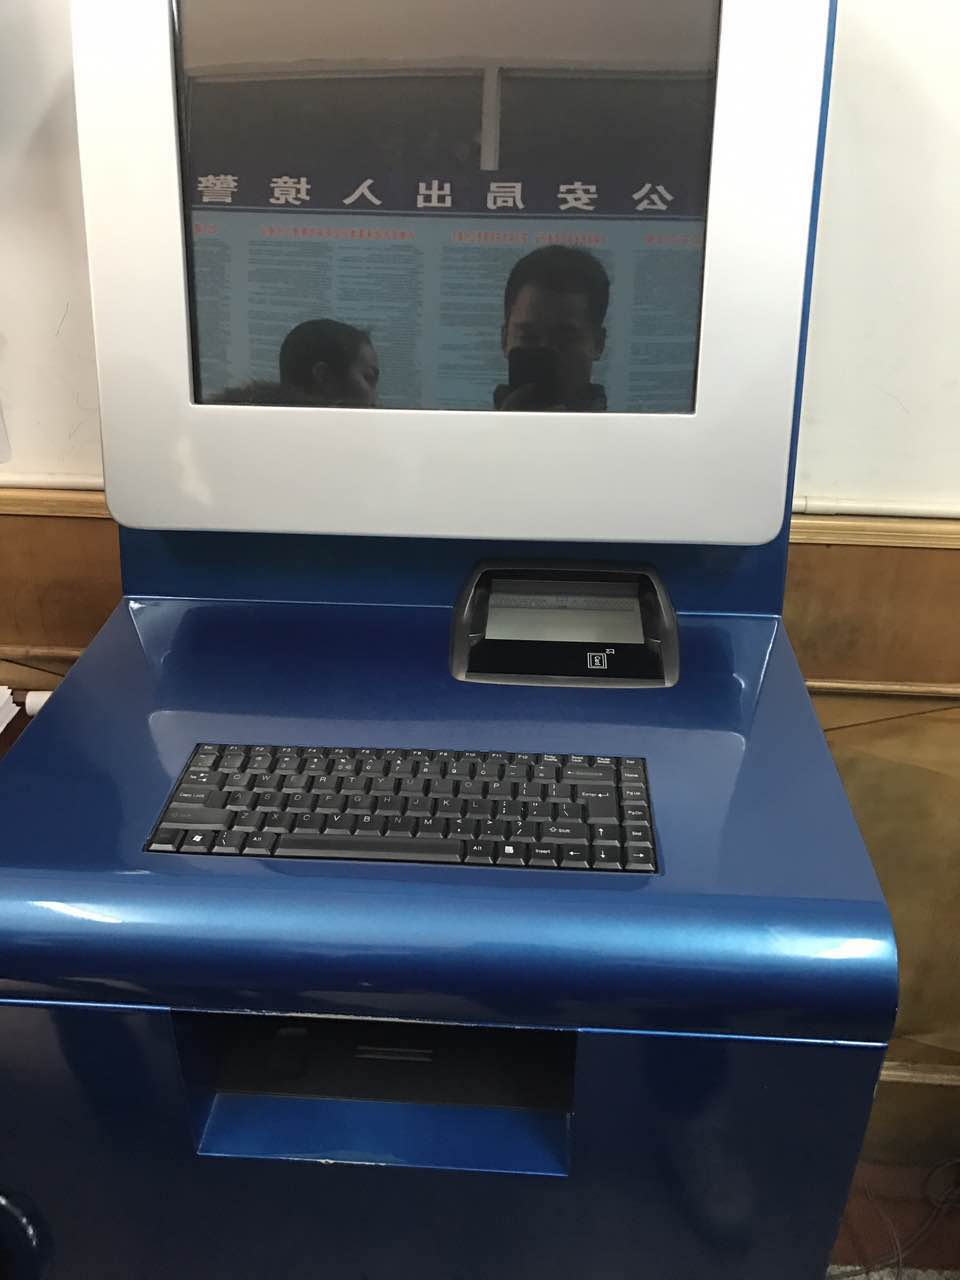 Kiosk Passport reader